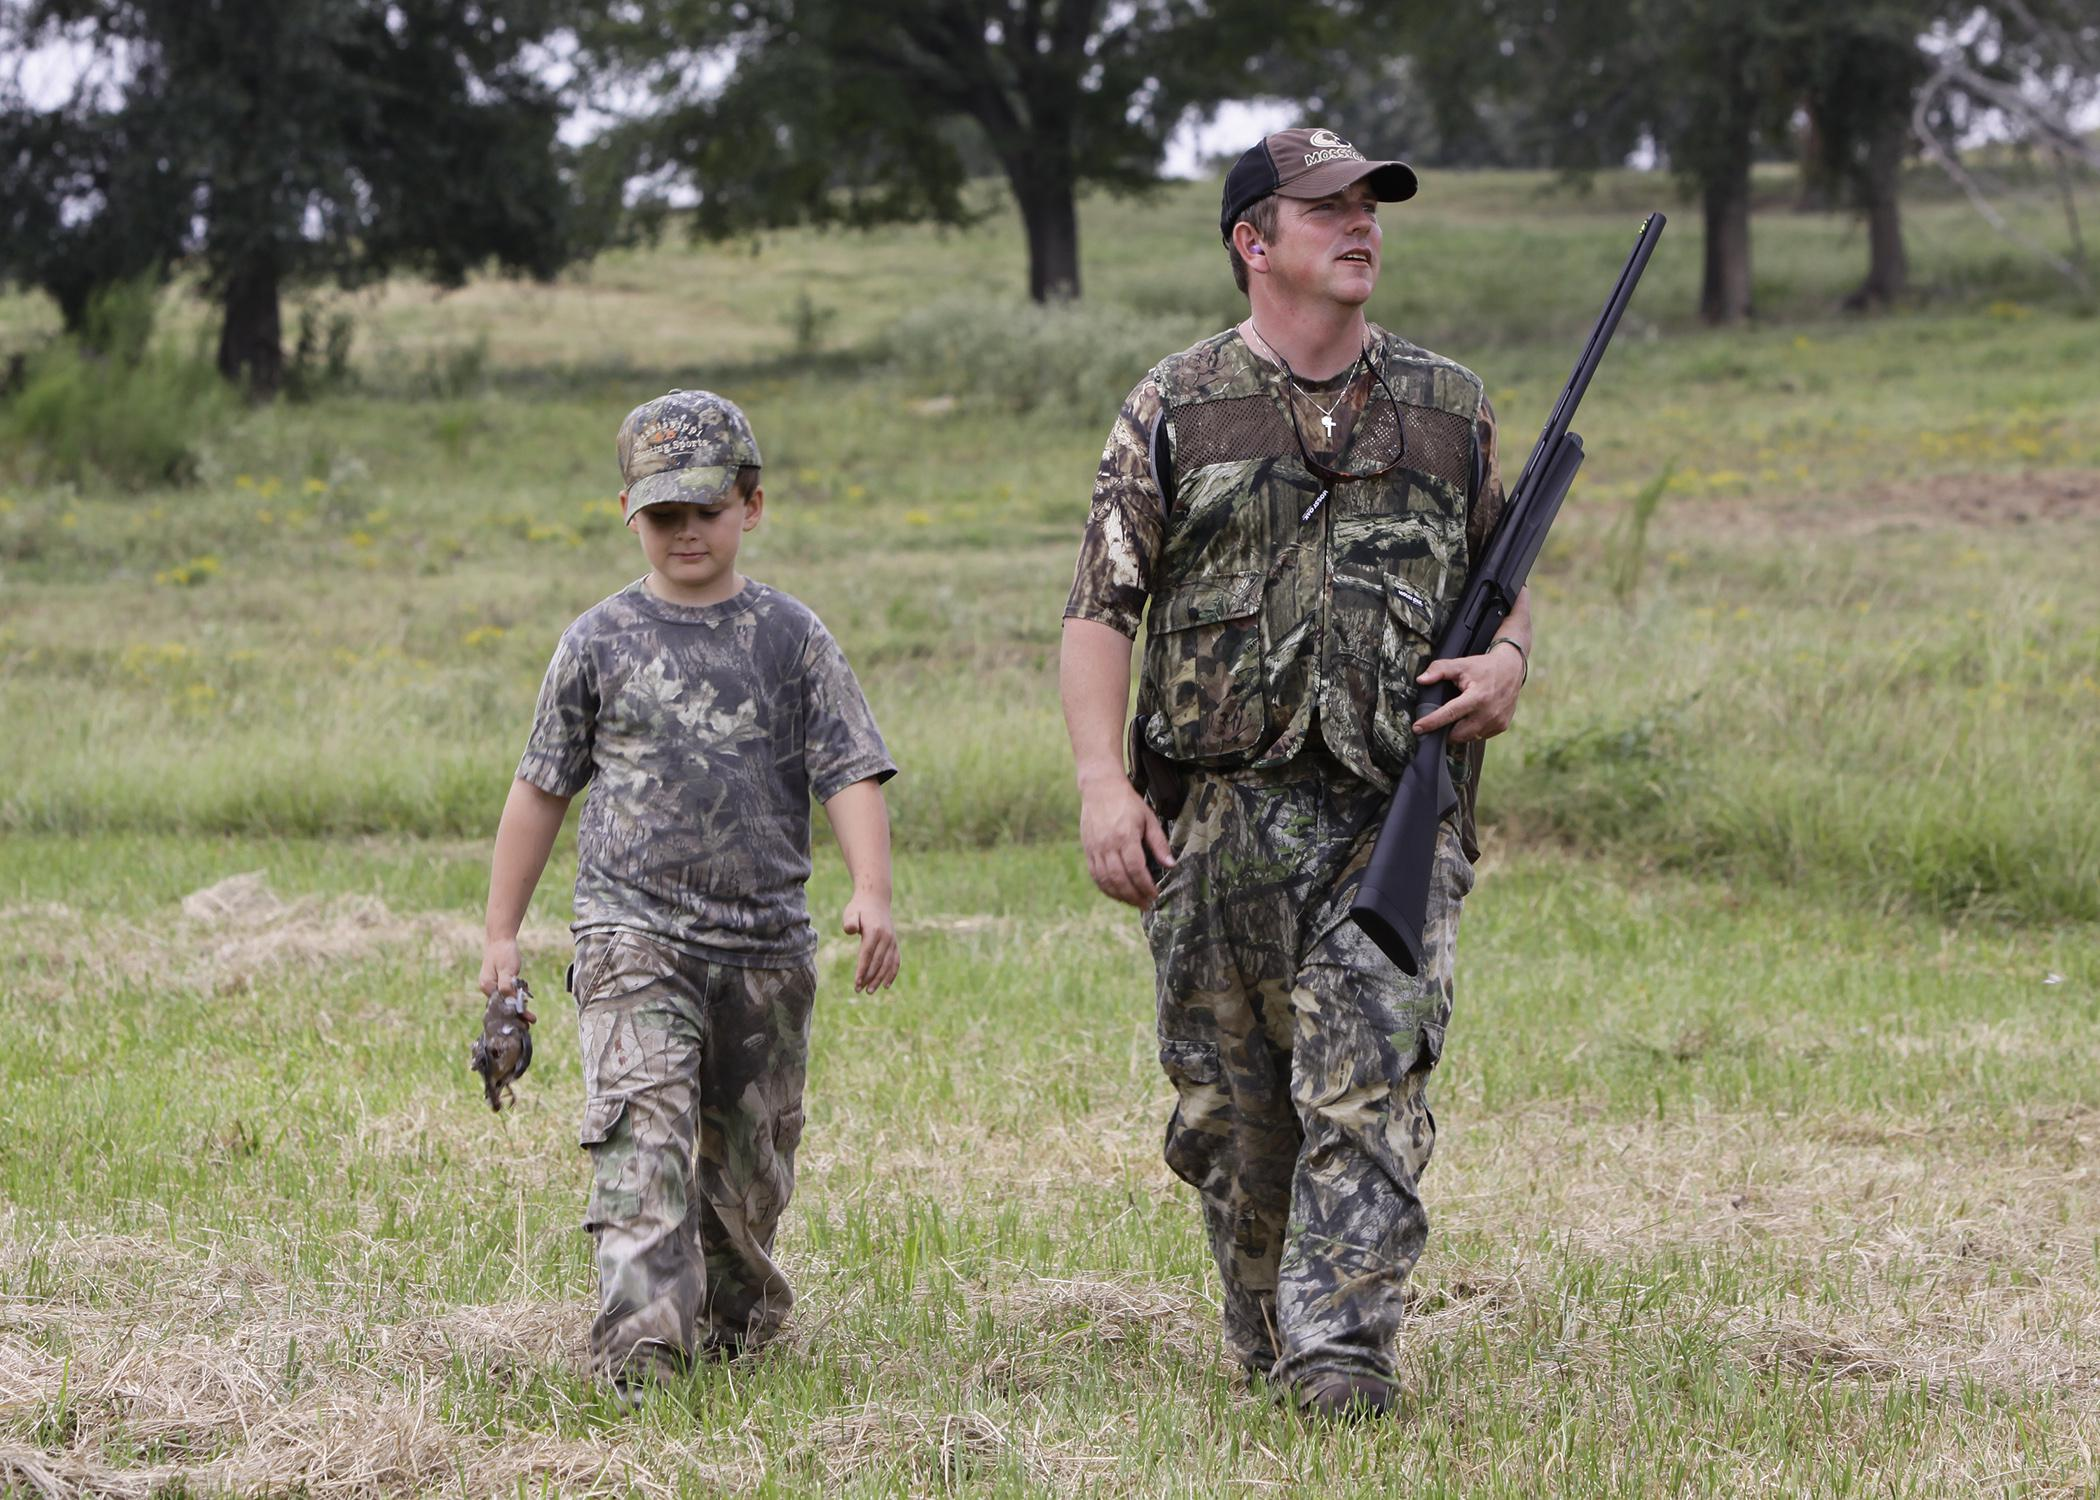 A man holding a shotgun and a boy dressed in camouflage walk in a grassy meadow.